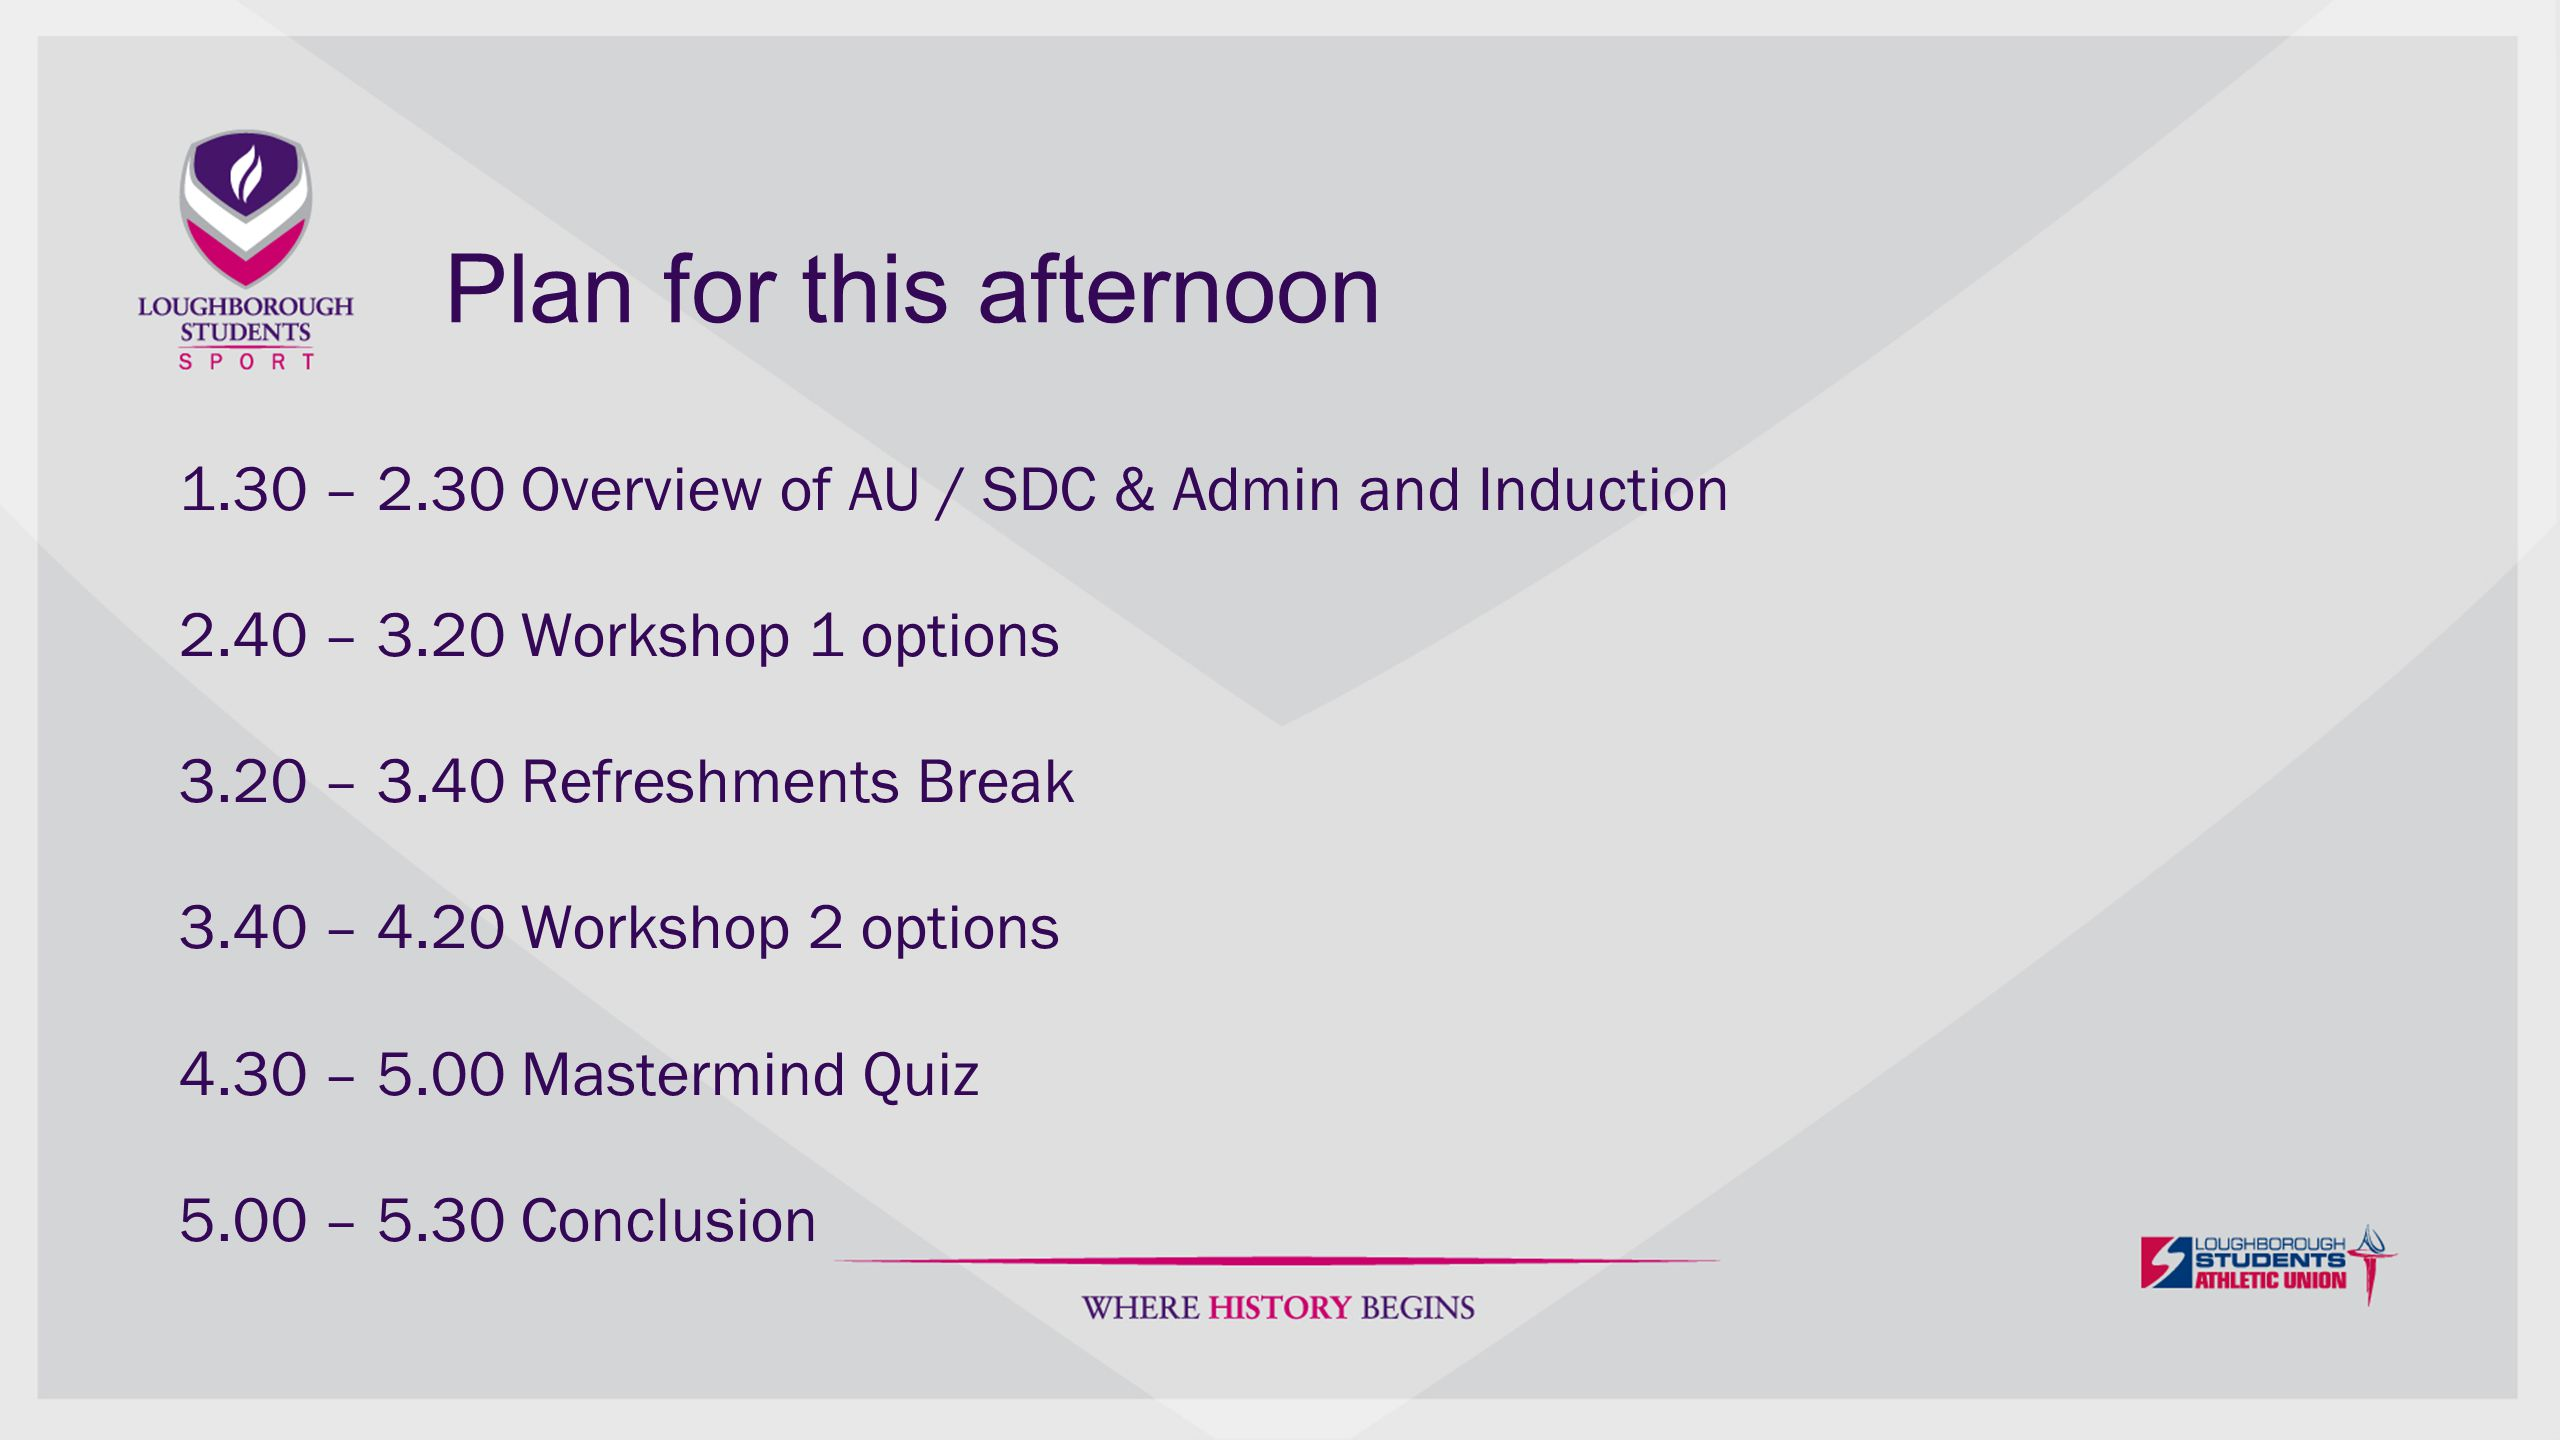 Plan for this afternoon 1.30 – 2.30 Overview of AU / SDC & Admin and Induction 2.40 – 3.20 Workshop 1 options 3.20 – 3.40 Refreshments Break 3.40 – 4.20 Workshop 2 options 4.30 – 5.00 Mastermind Quiz 5.00 – 5.30 Conclusion